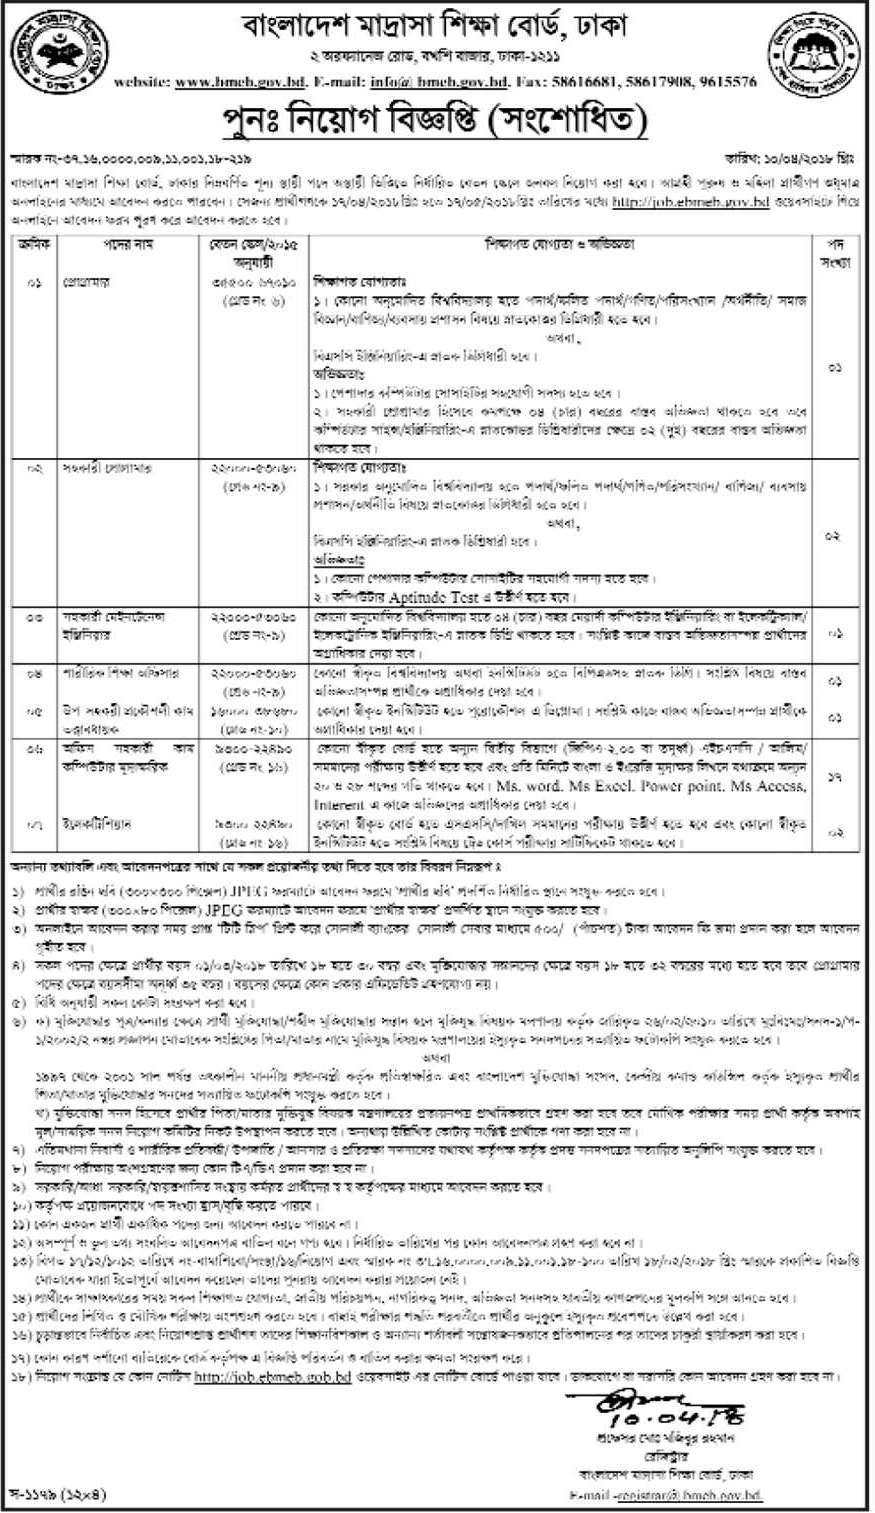 Bangladesh Madrasah Education Board BMEB Job Circular – www.bmeb.gov.bd